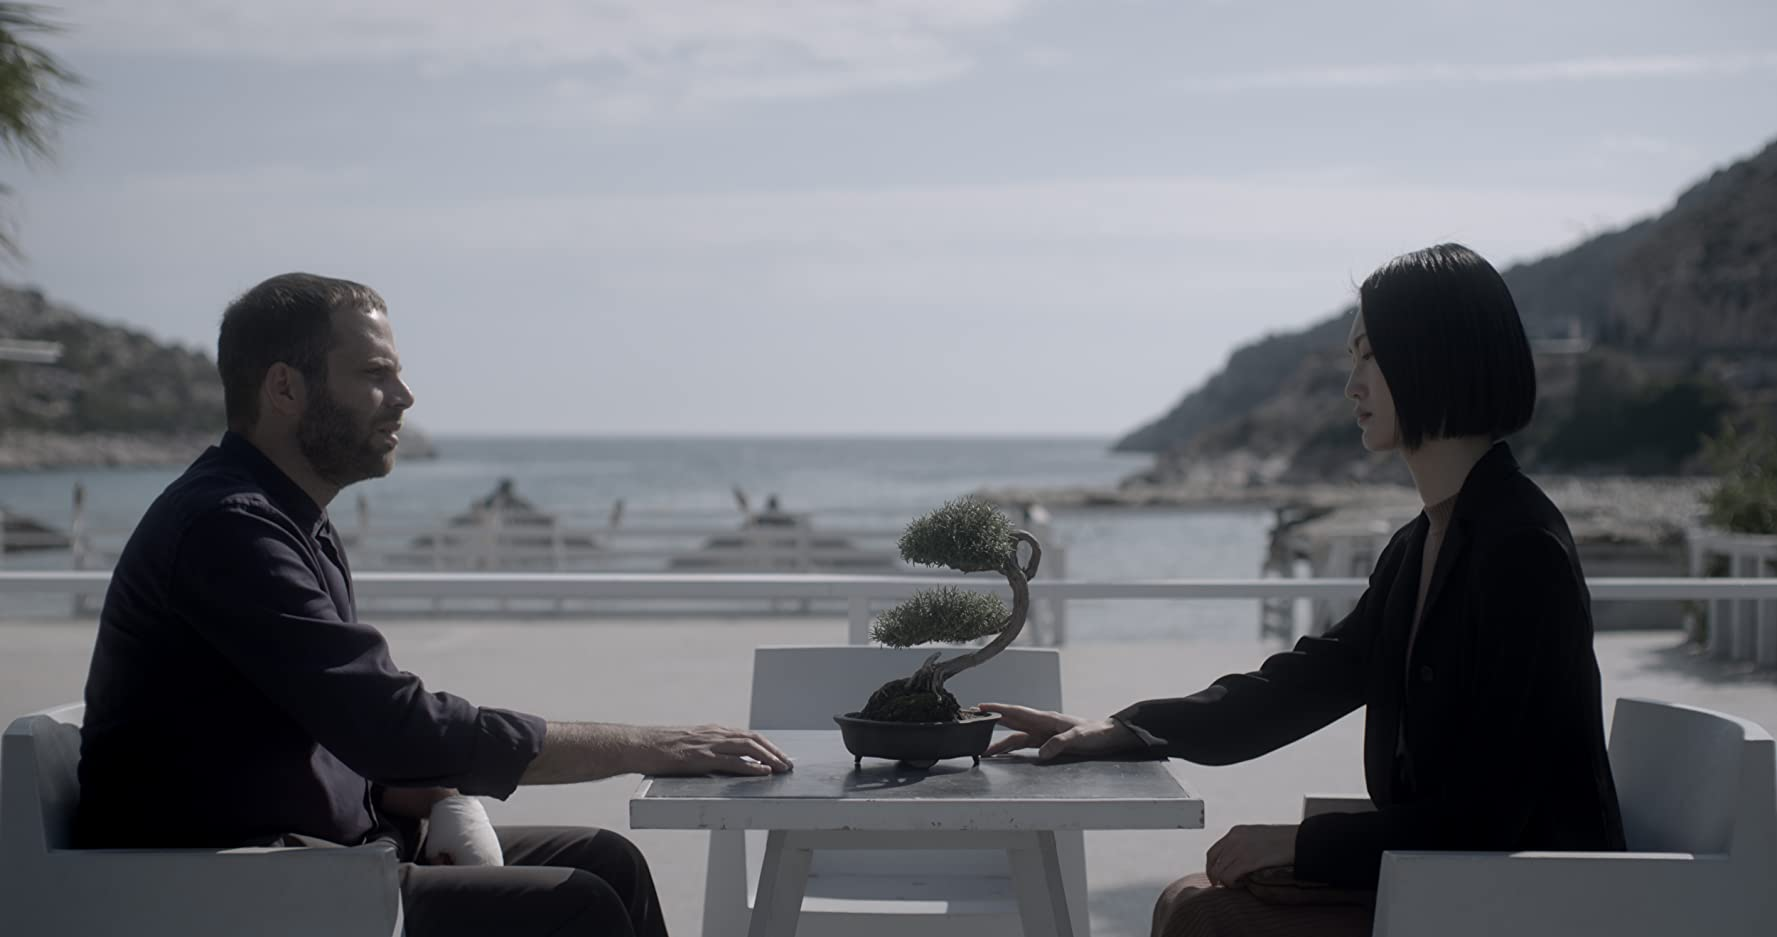 a guy and a girl sitting at a table film still unpleasant